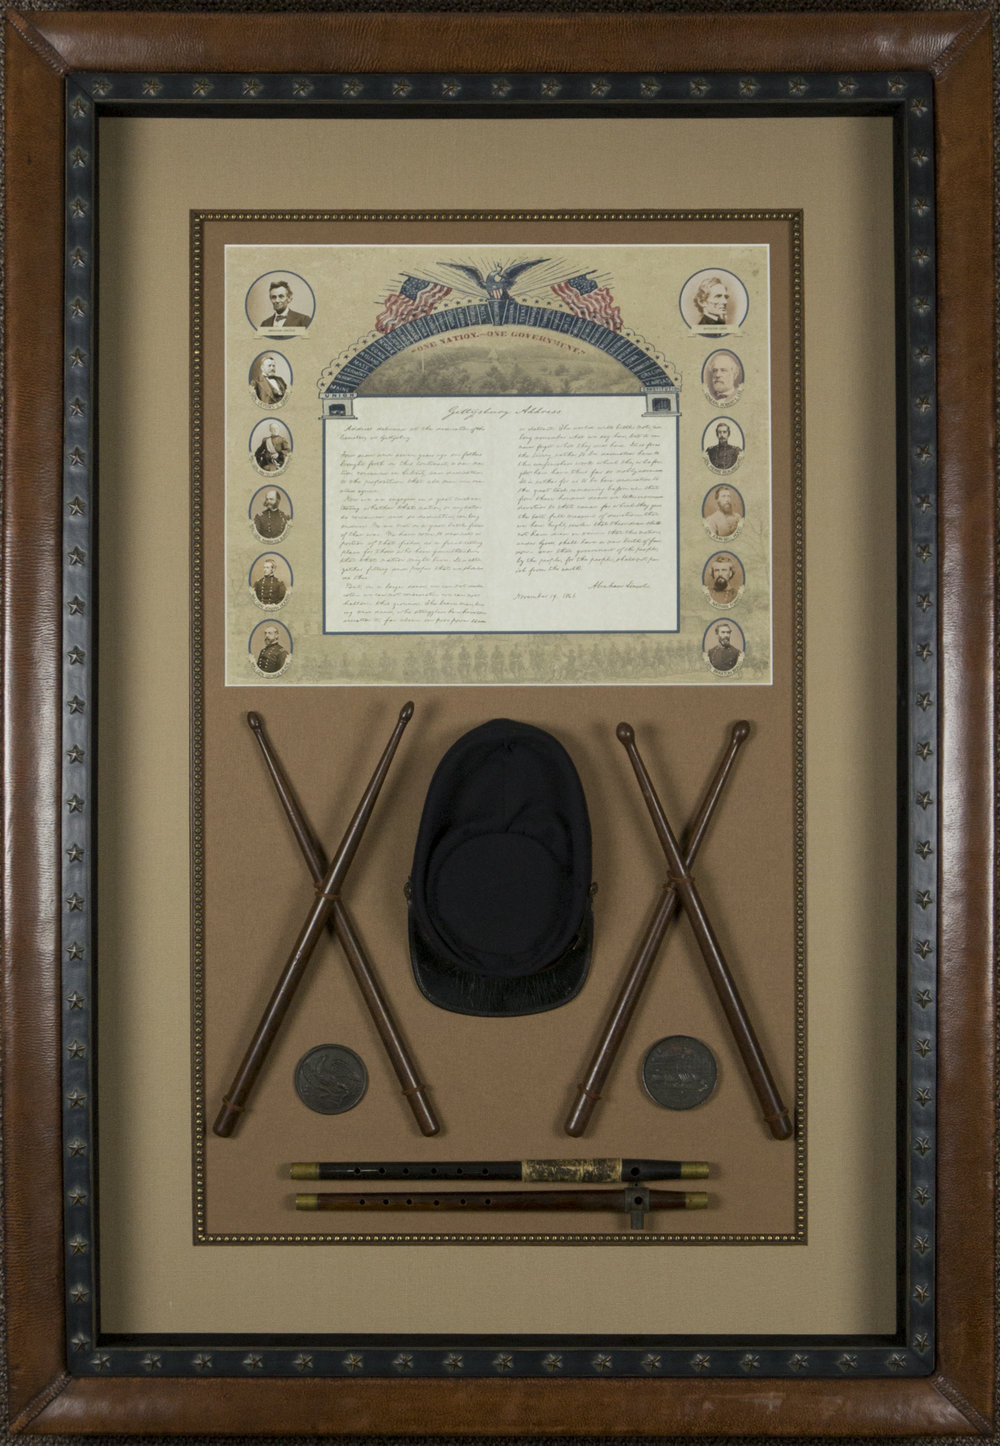 PRIVATE COLLECTION HISTORIC ARTIFACT DISPLAY SHADOWBOXES